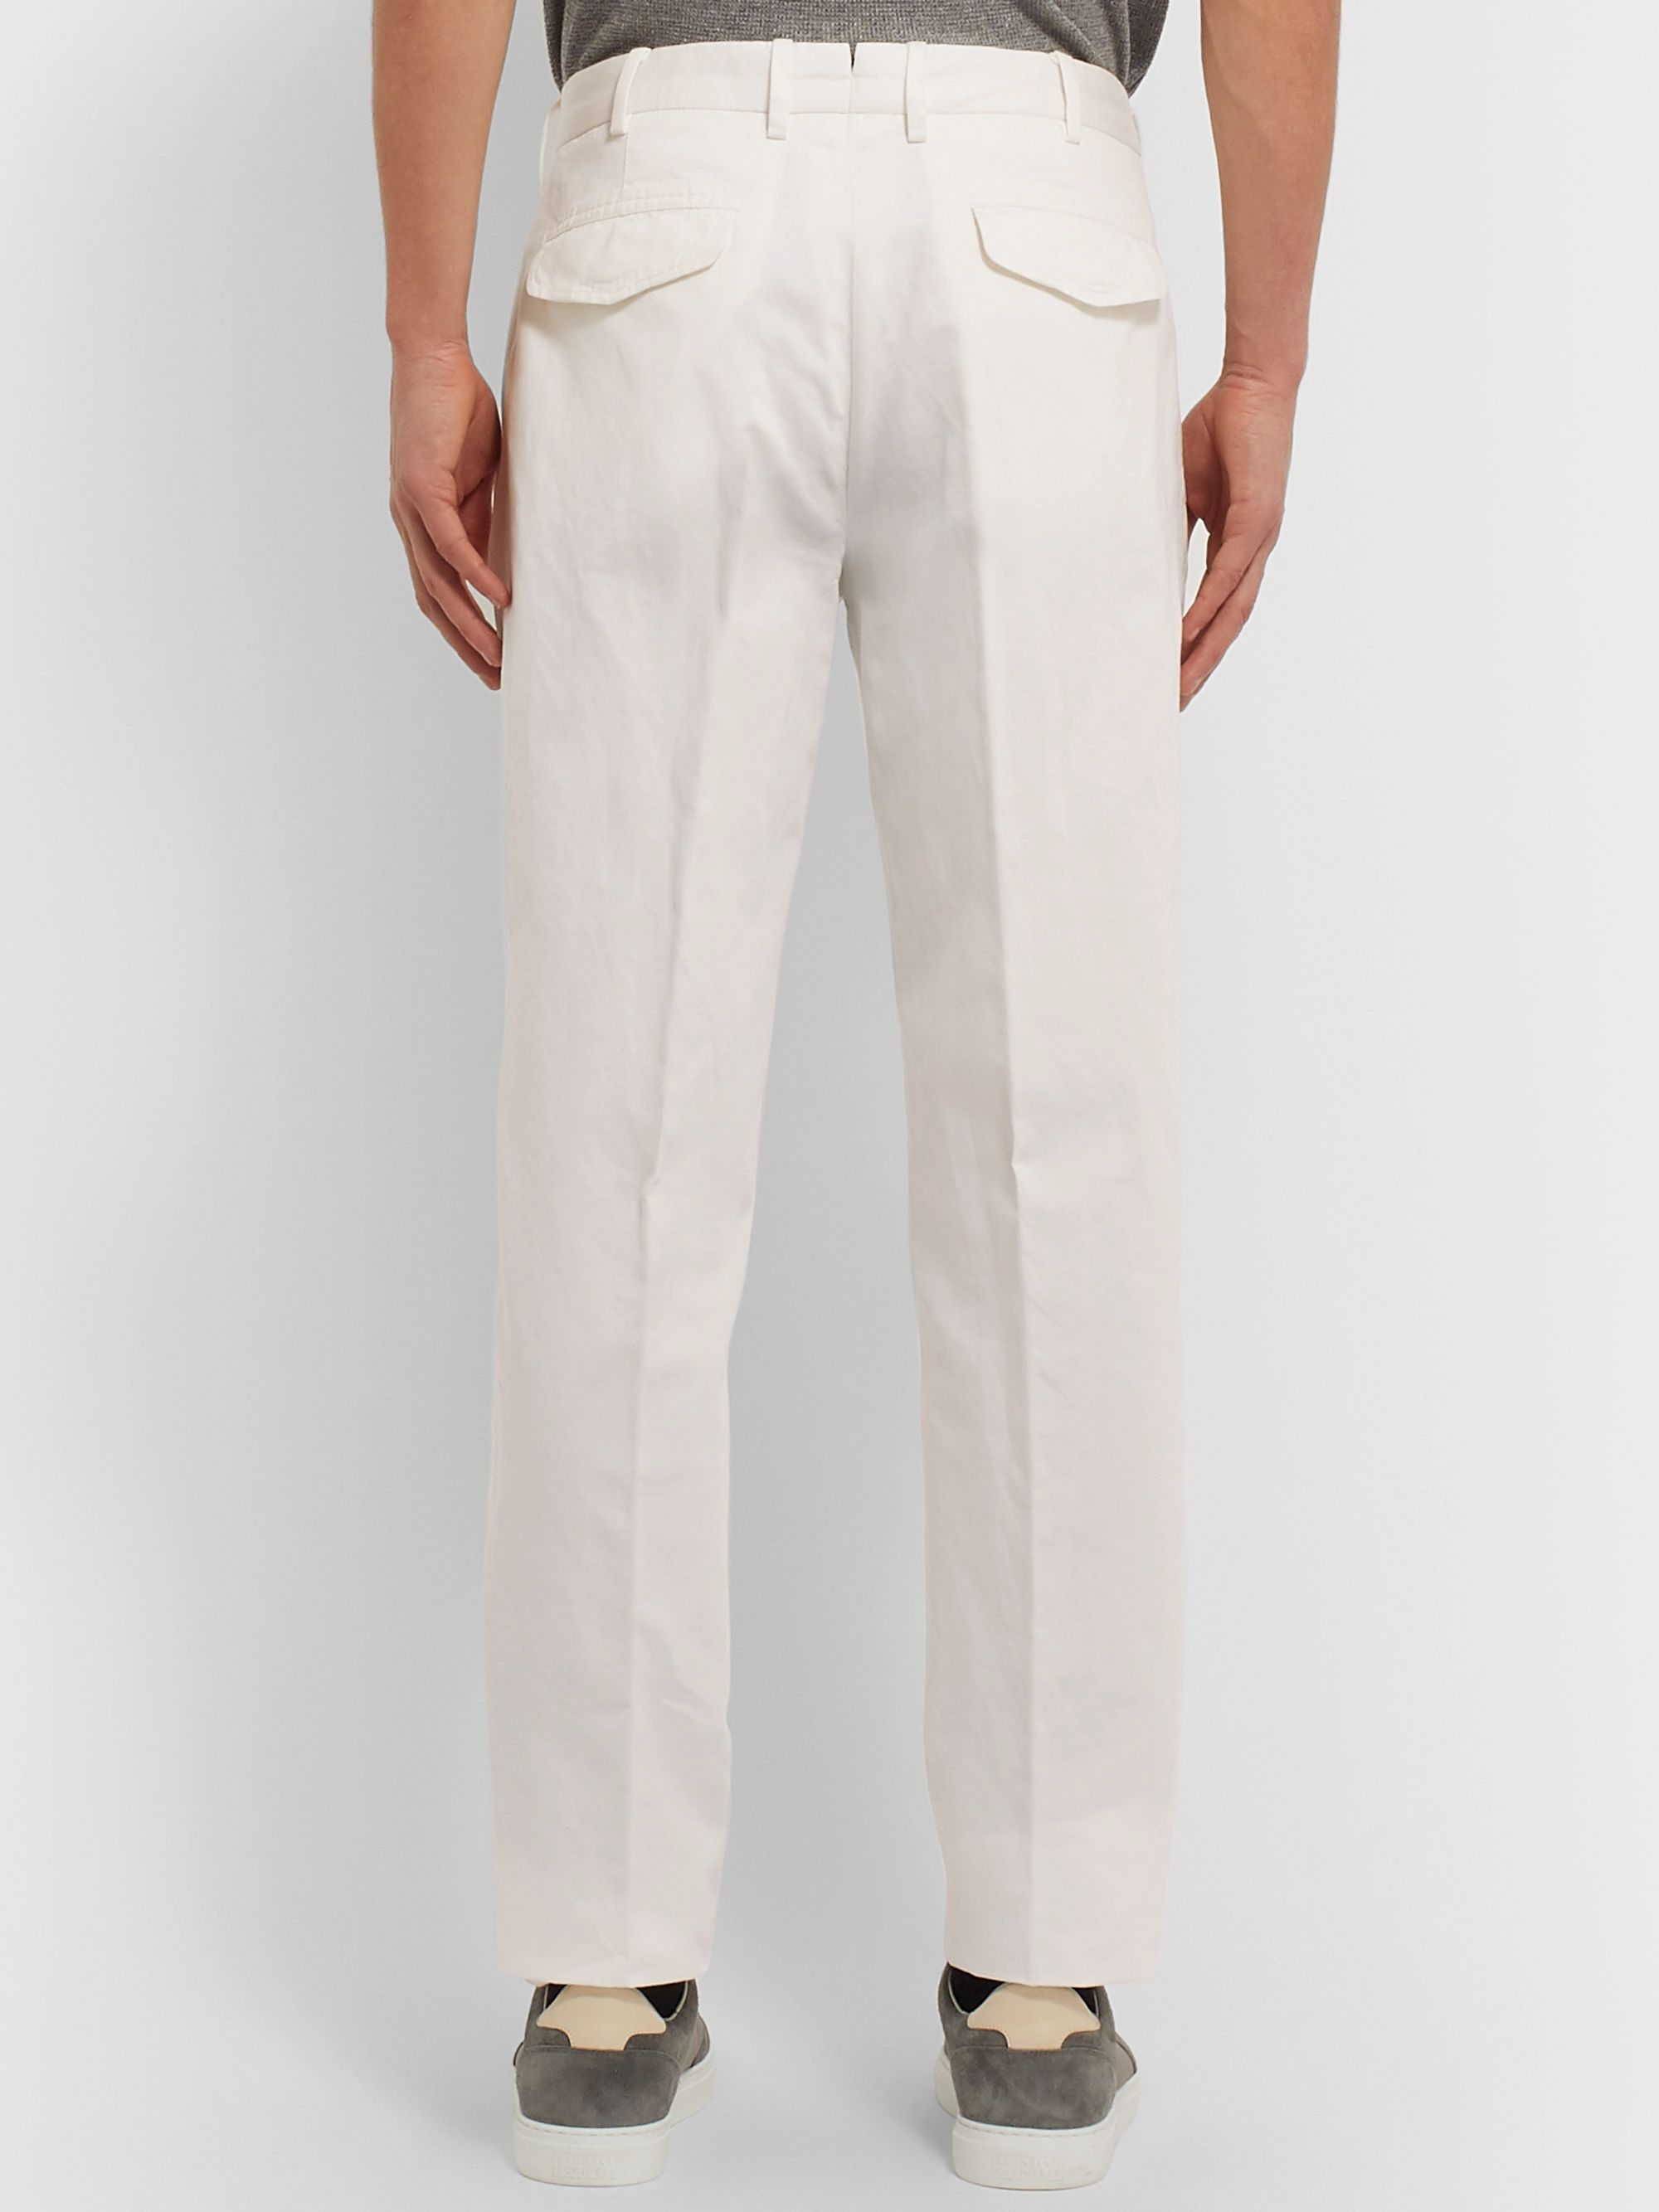 Ermenegildo Zegna Cotton and Linen-Blend Trousers